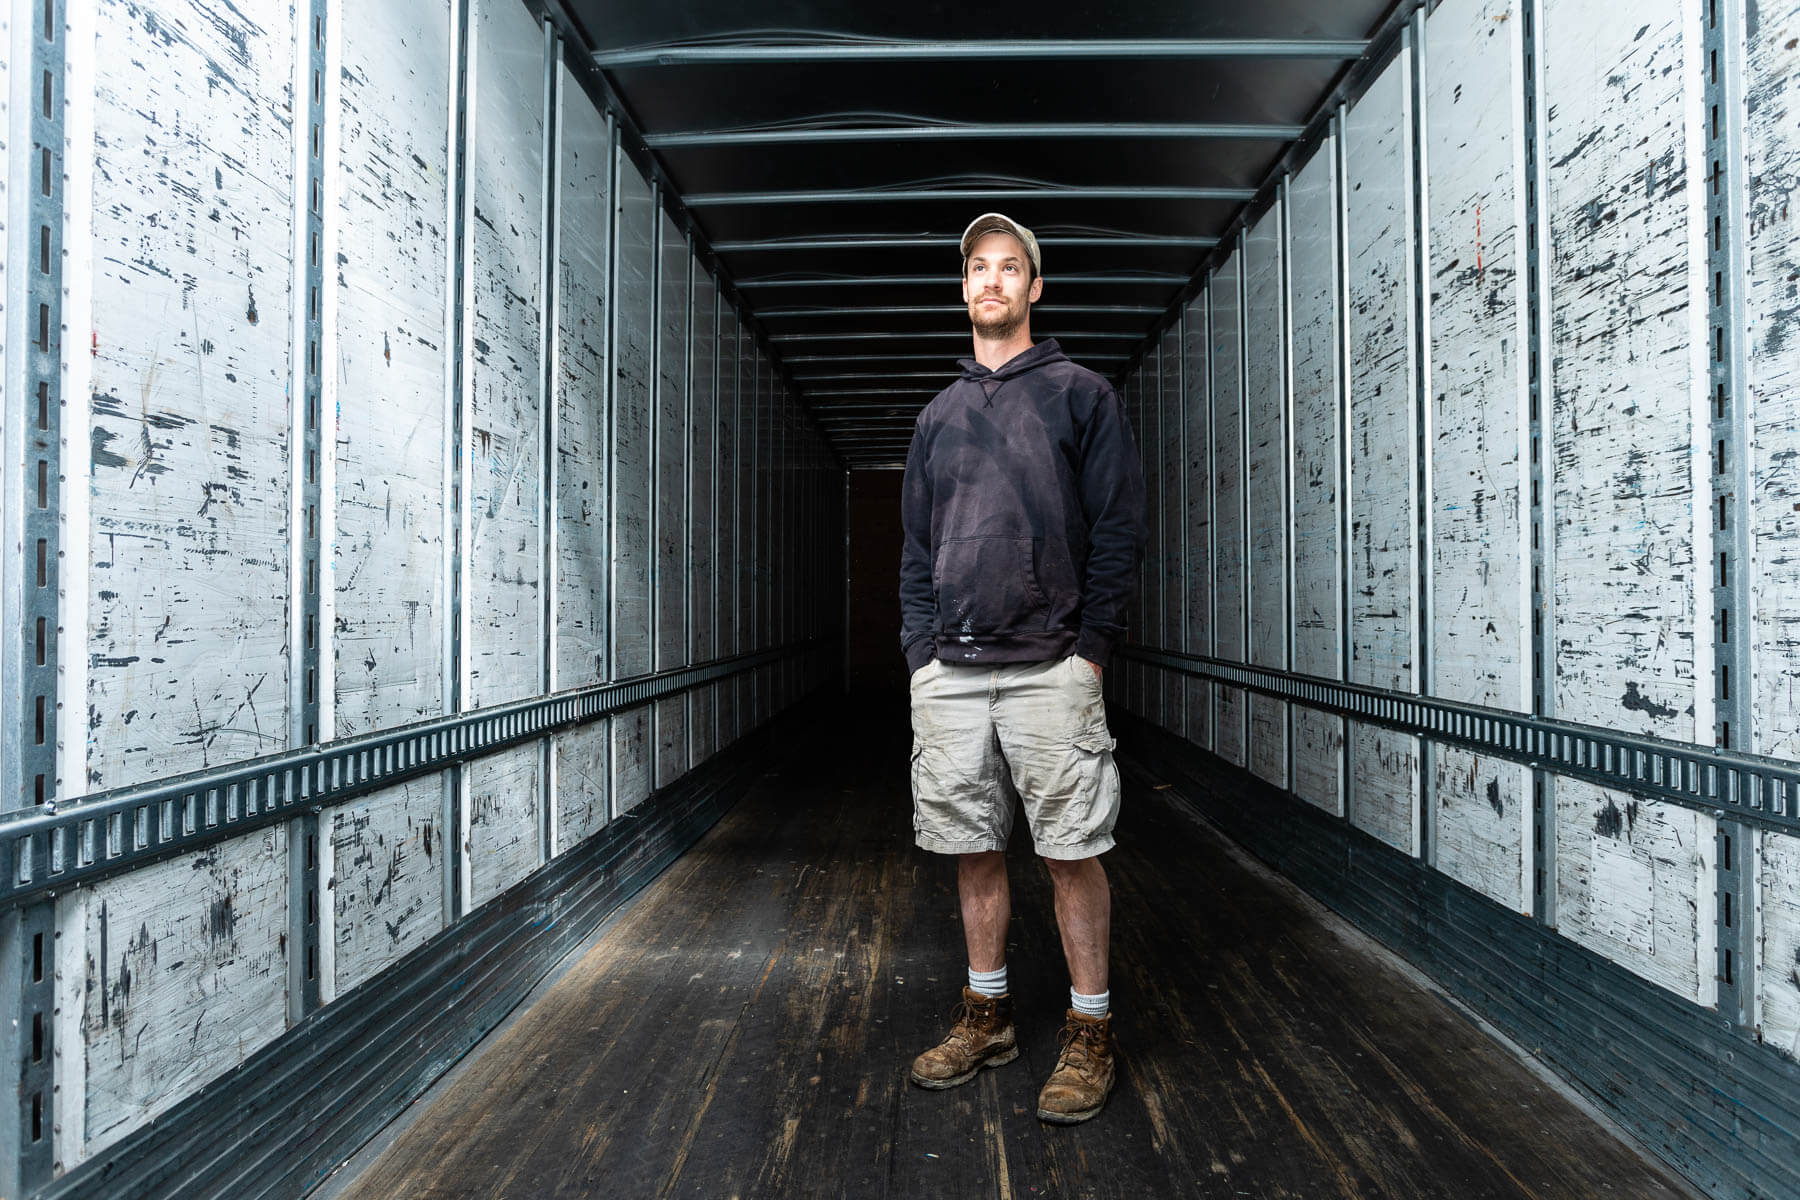 Man stand inside empty metal rectangular container of semi-truck